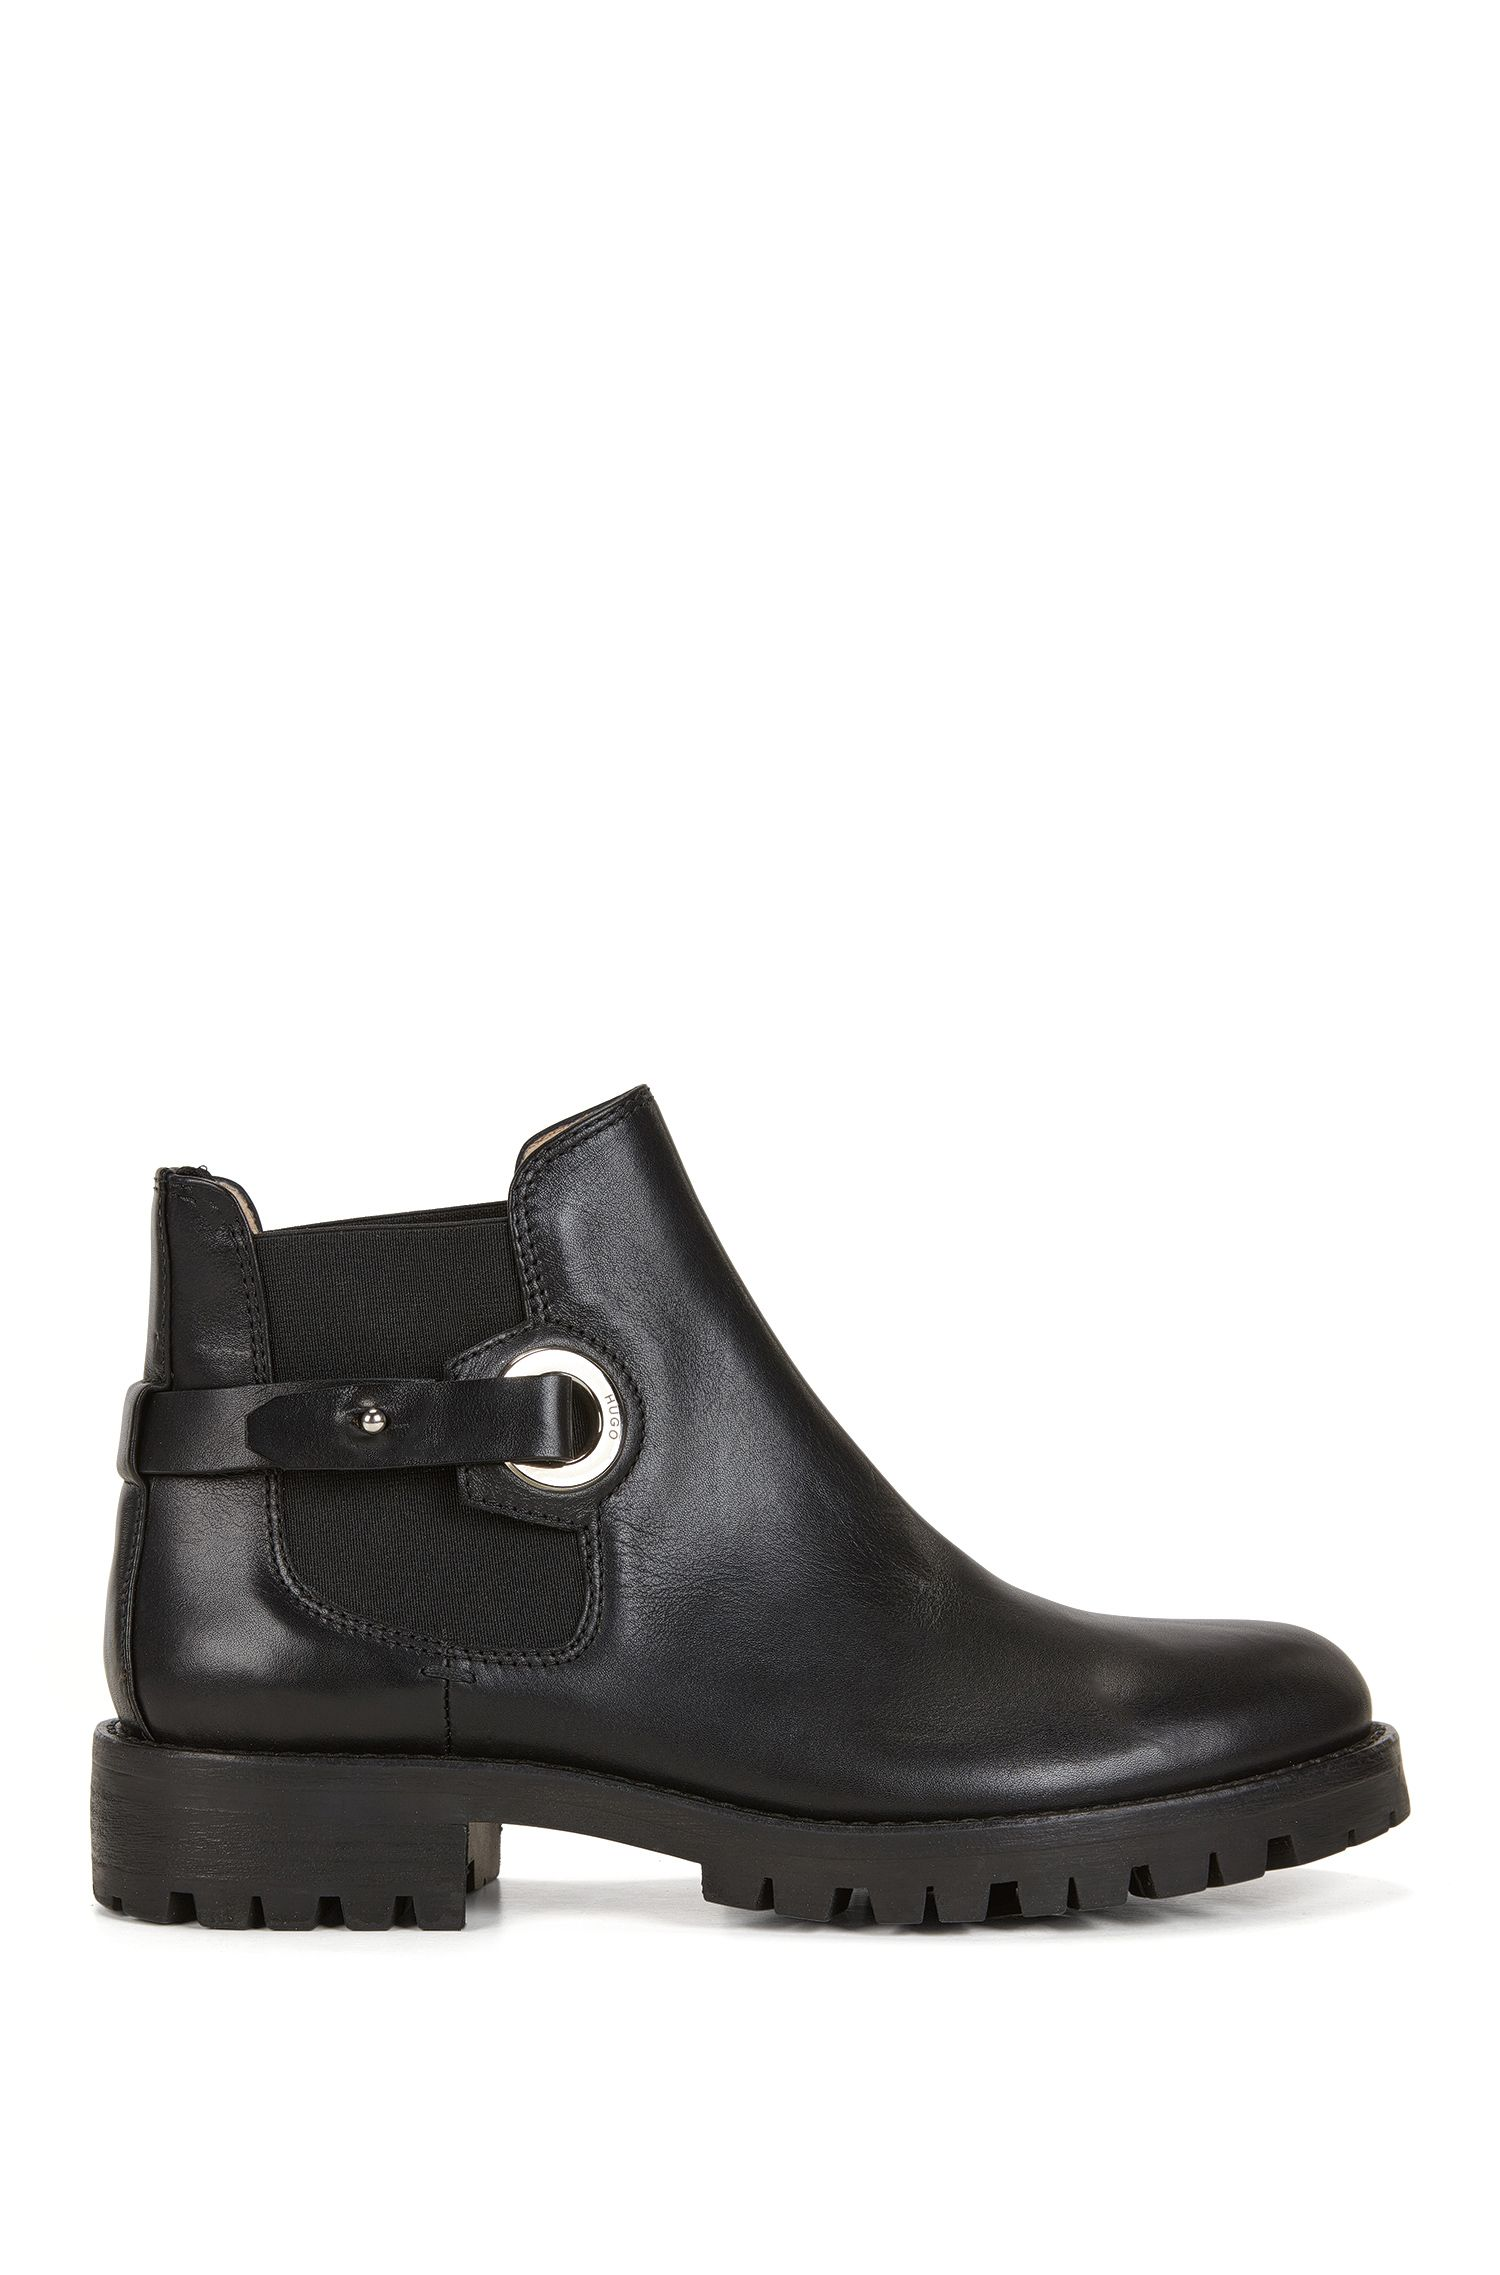 Strapped Italian leather Chelsea boots